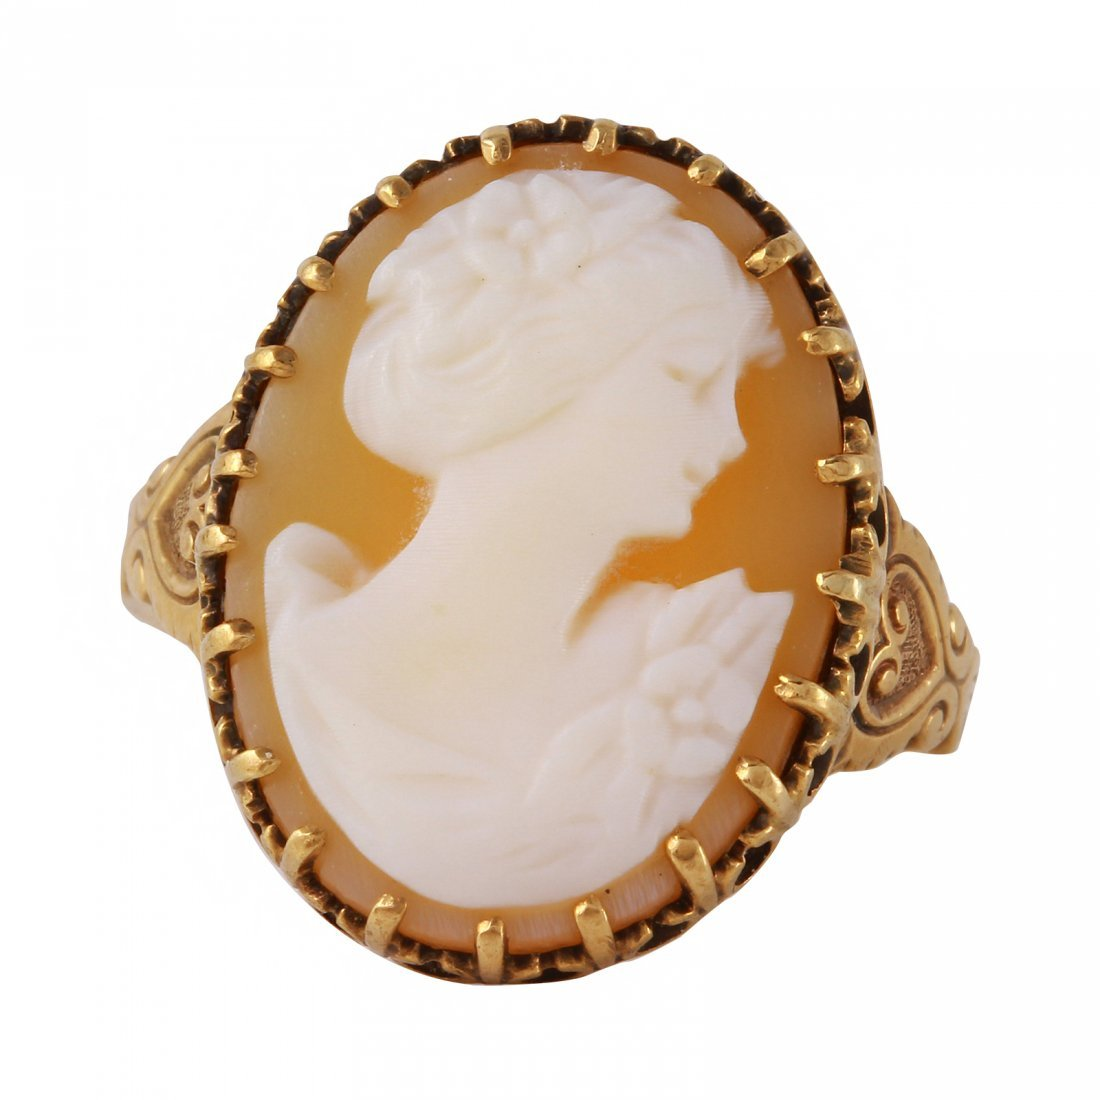 10K Yellow Gold Cameo Ring